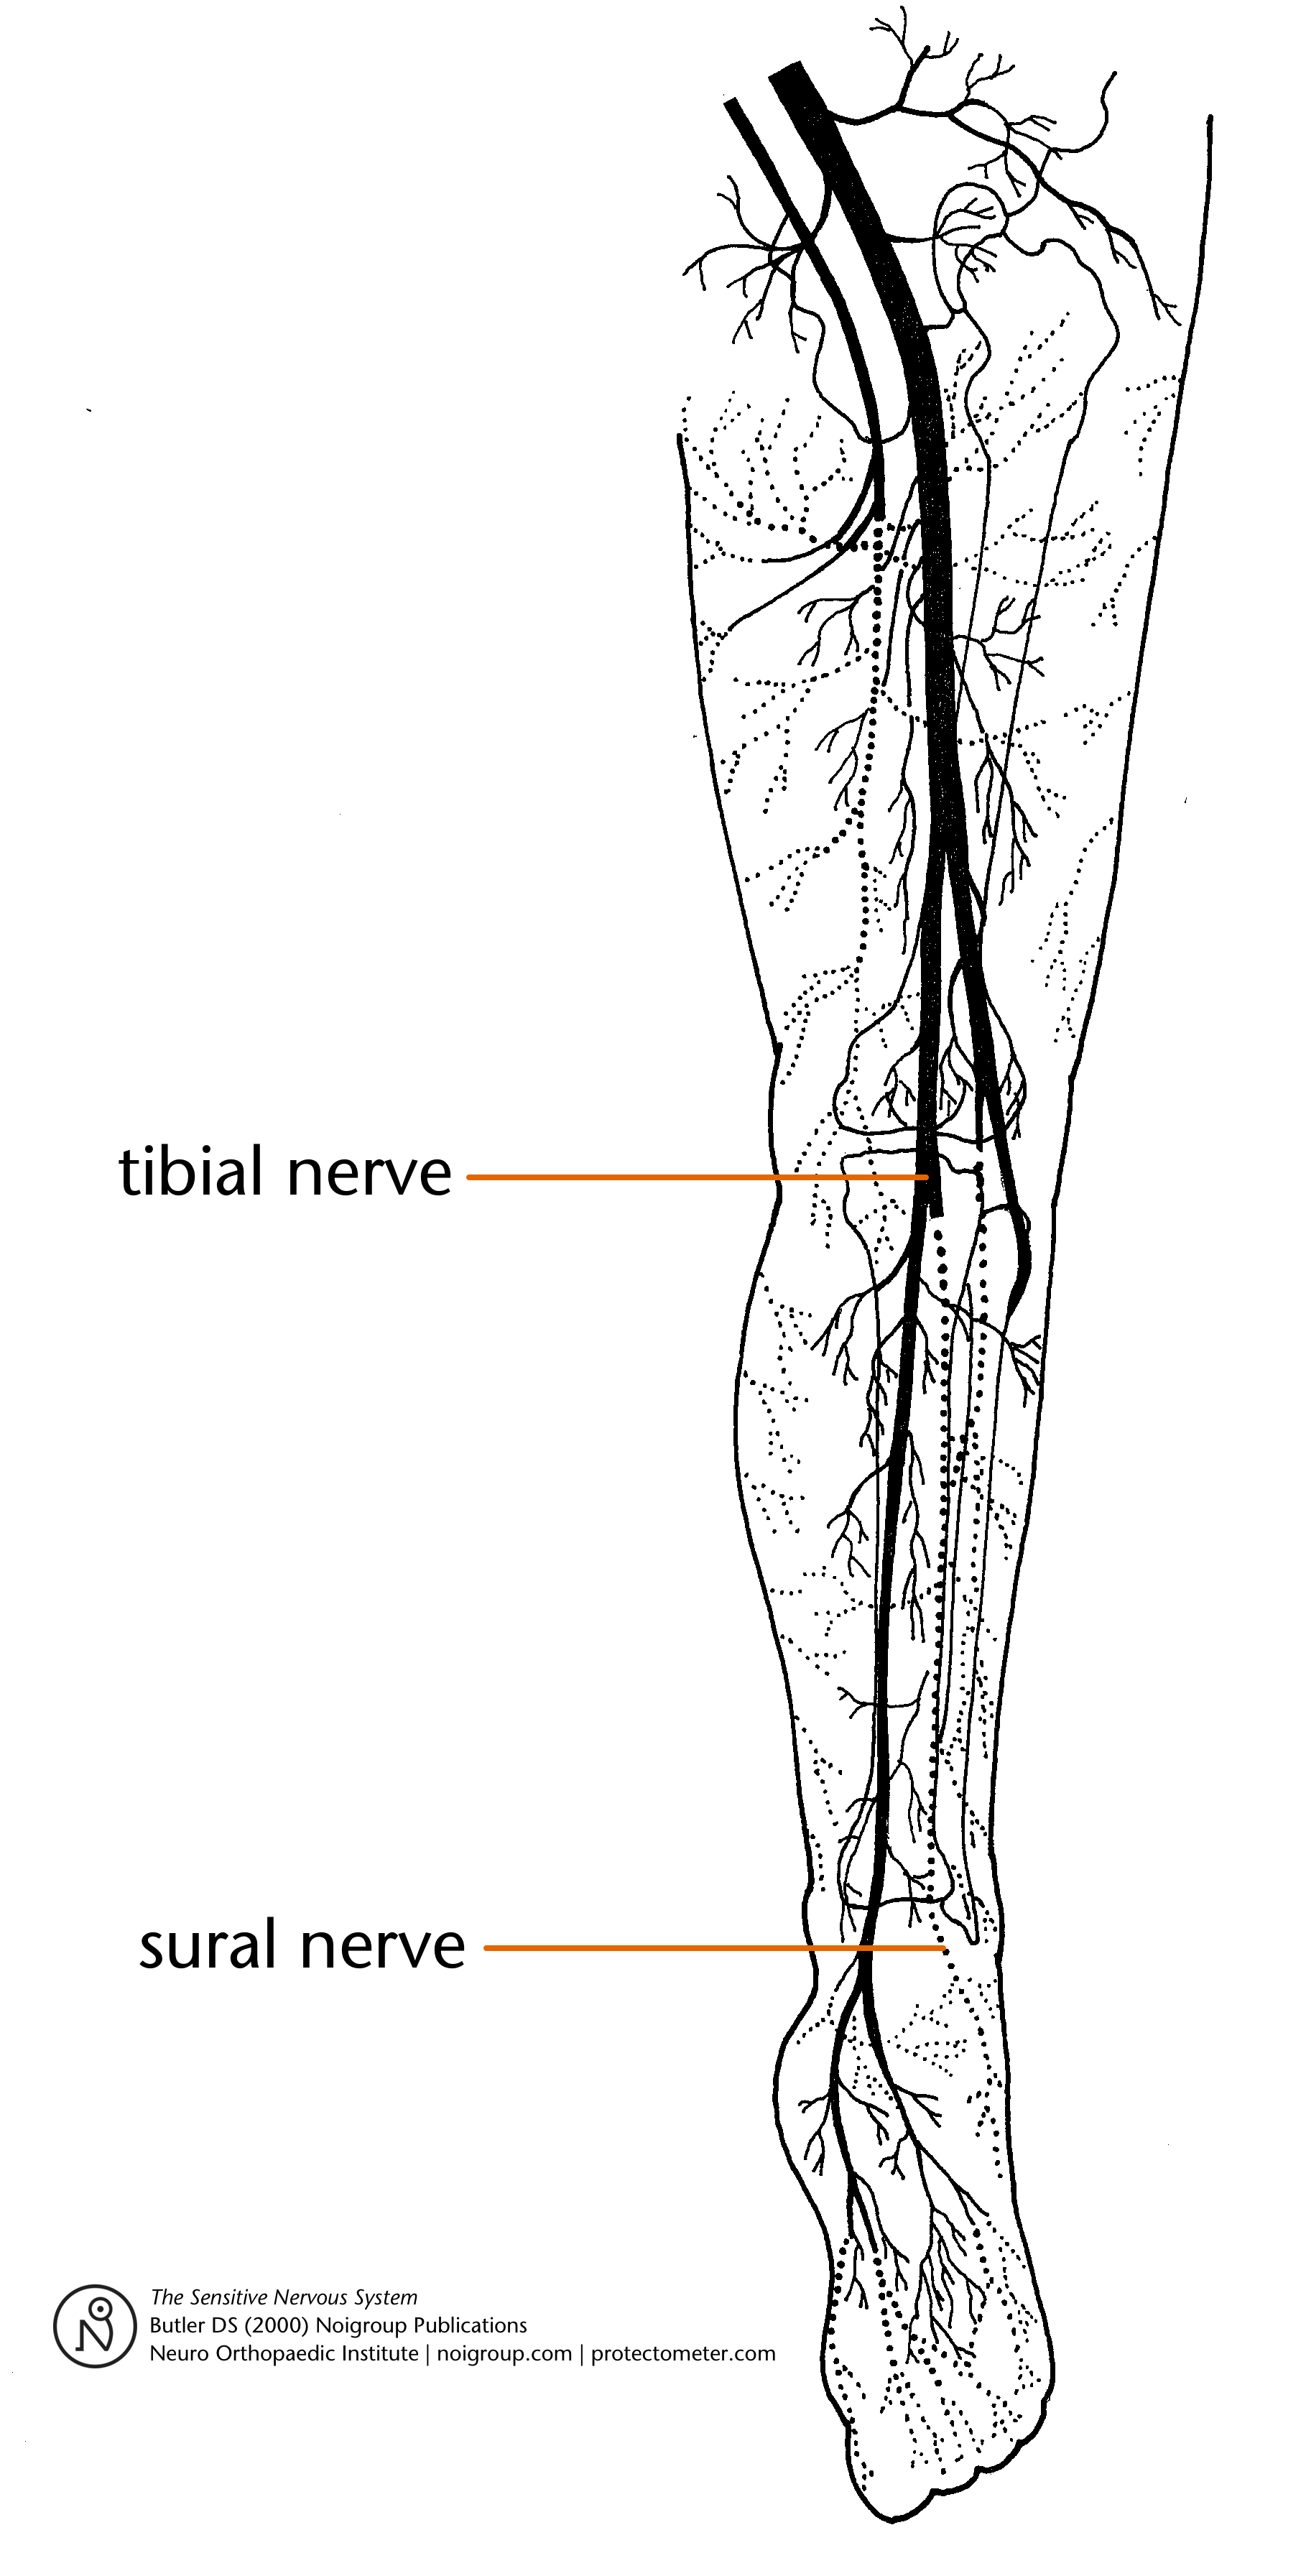 Sacral Nervous System Diagram